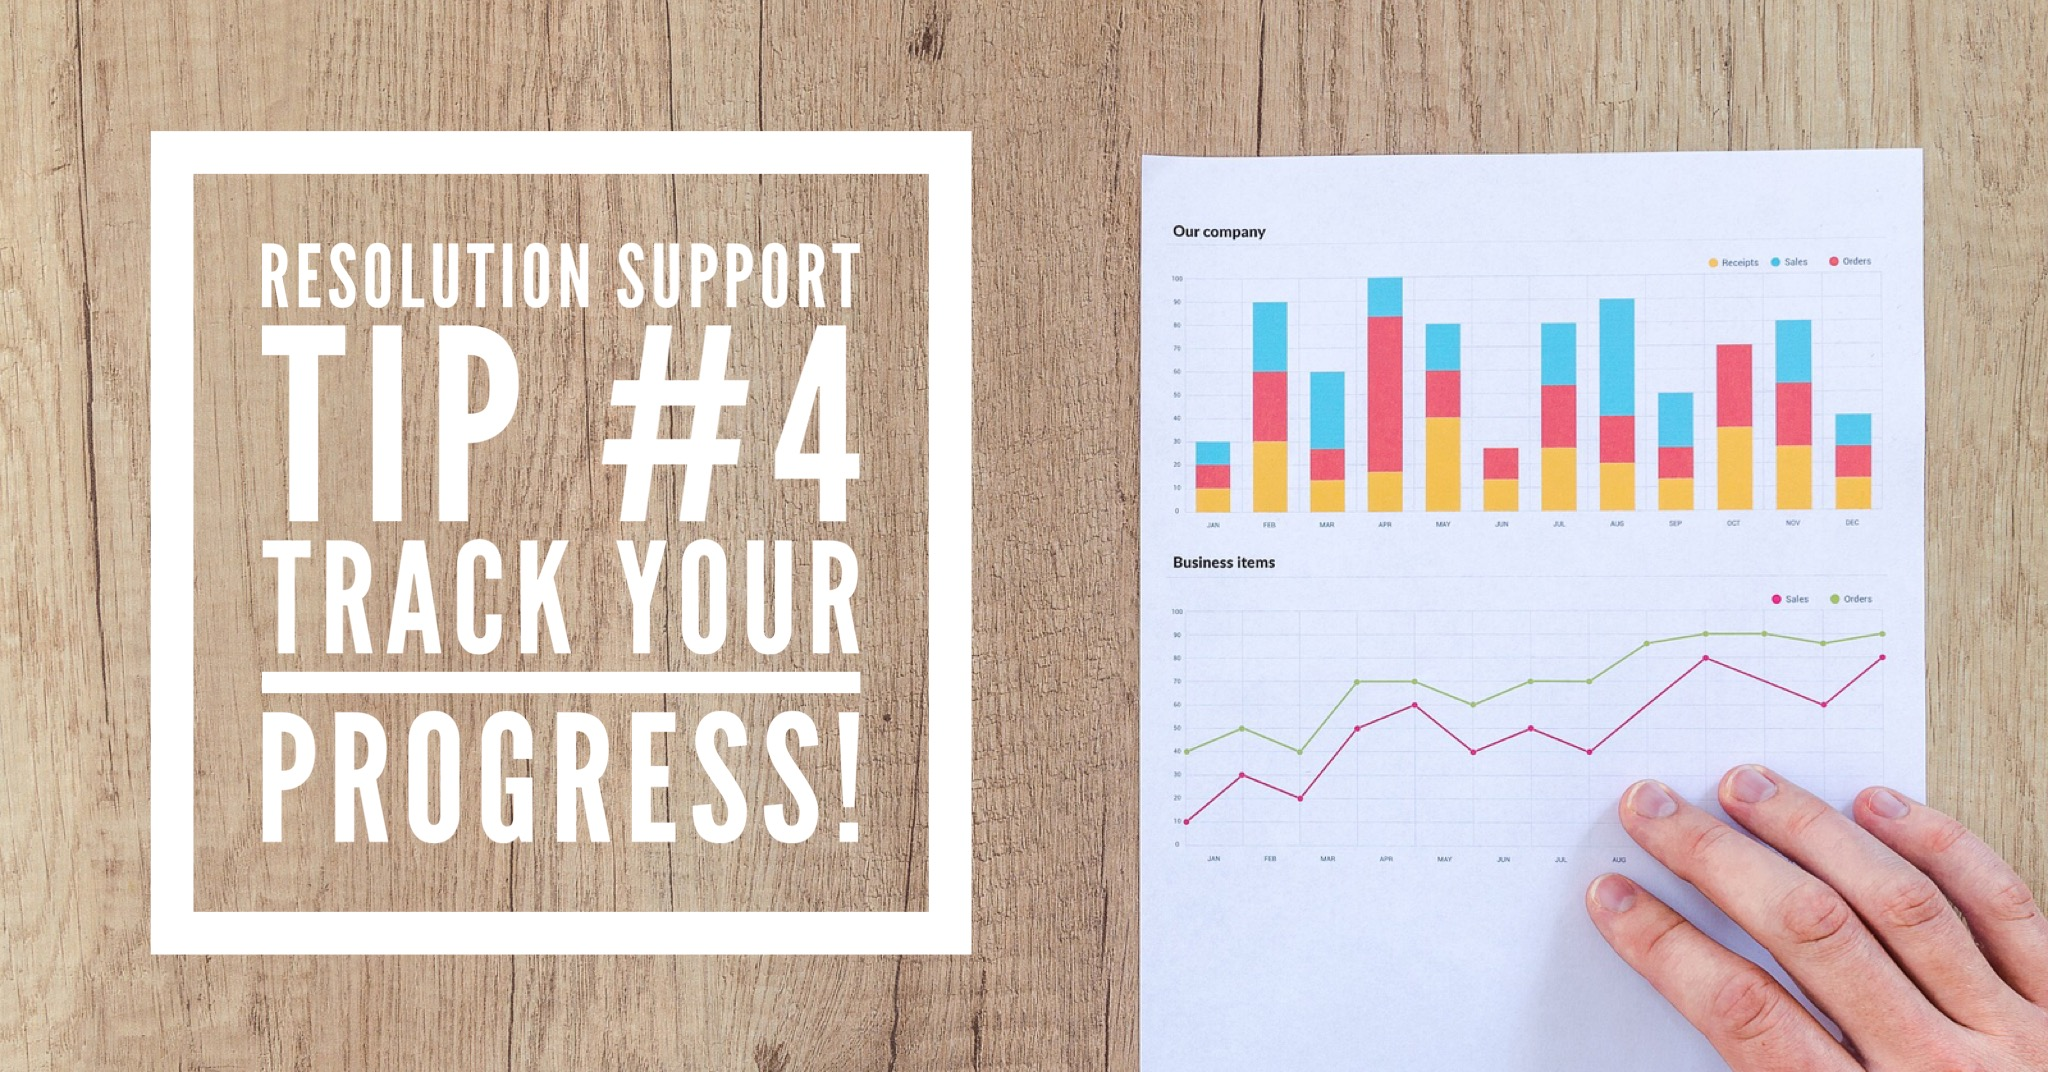 Resolution Support Tip #4: Track your progress!